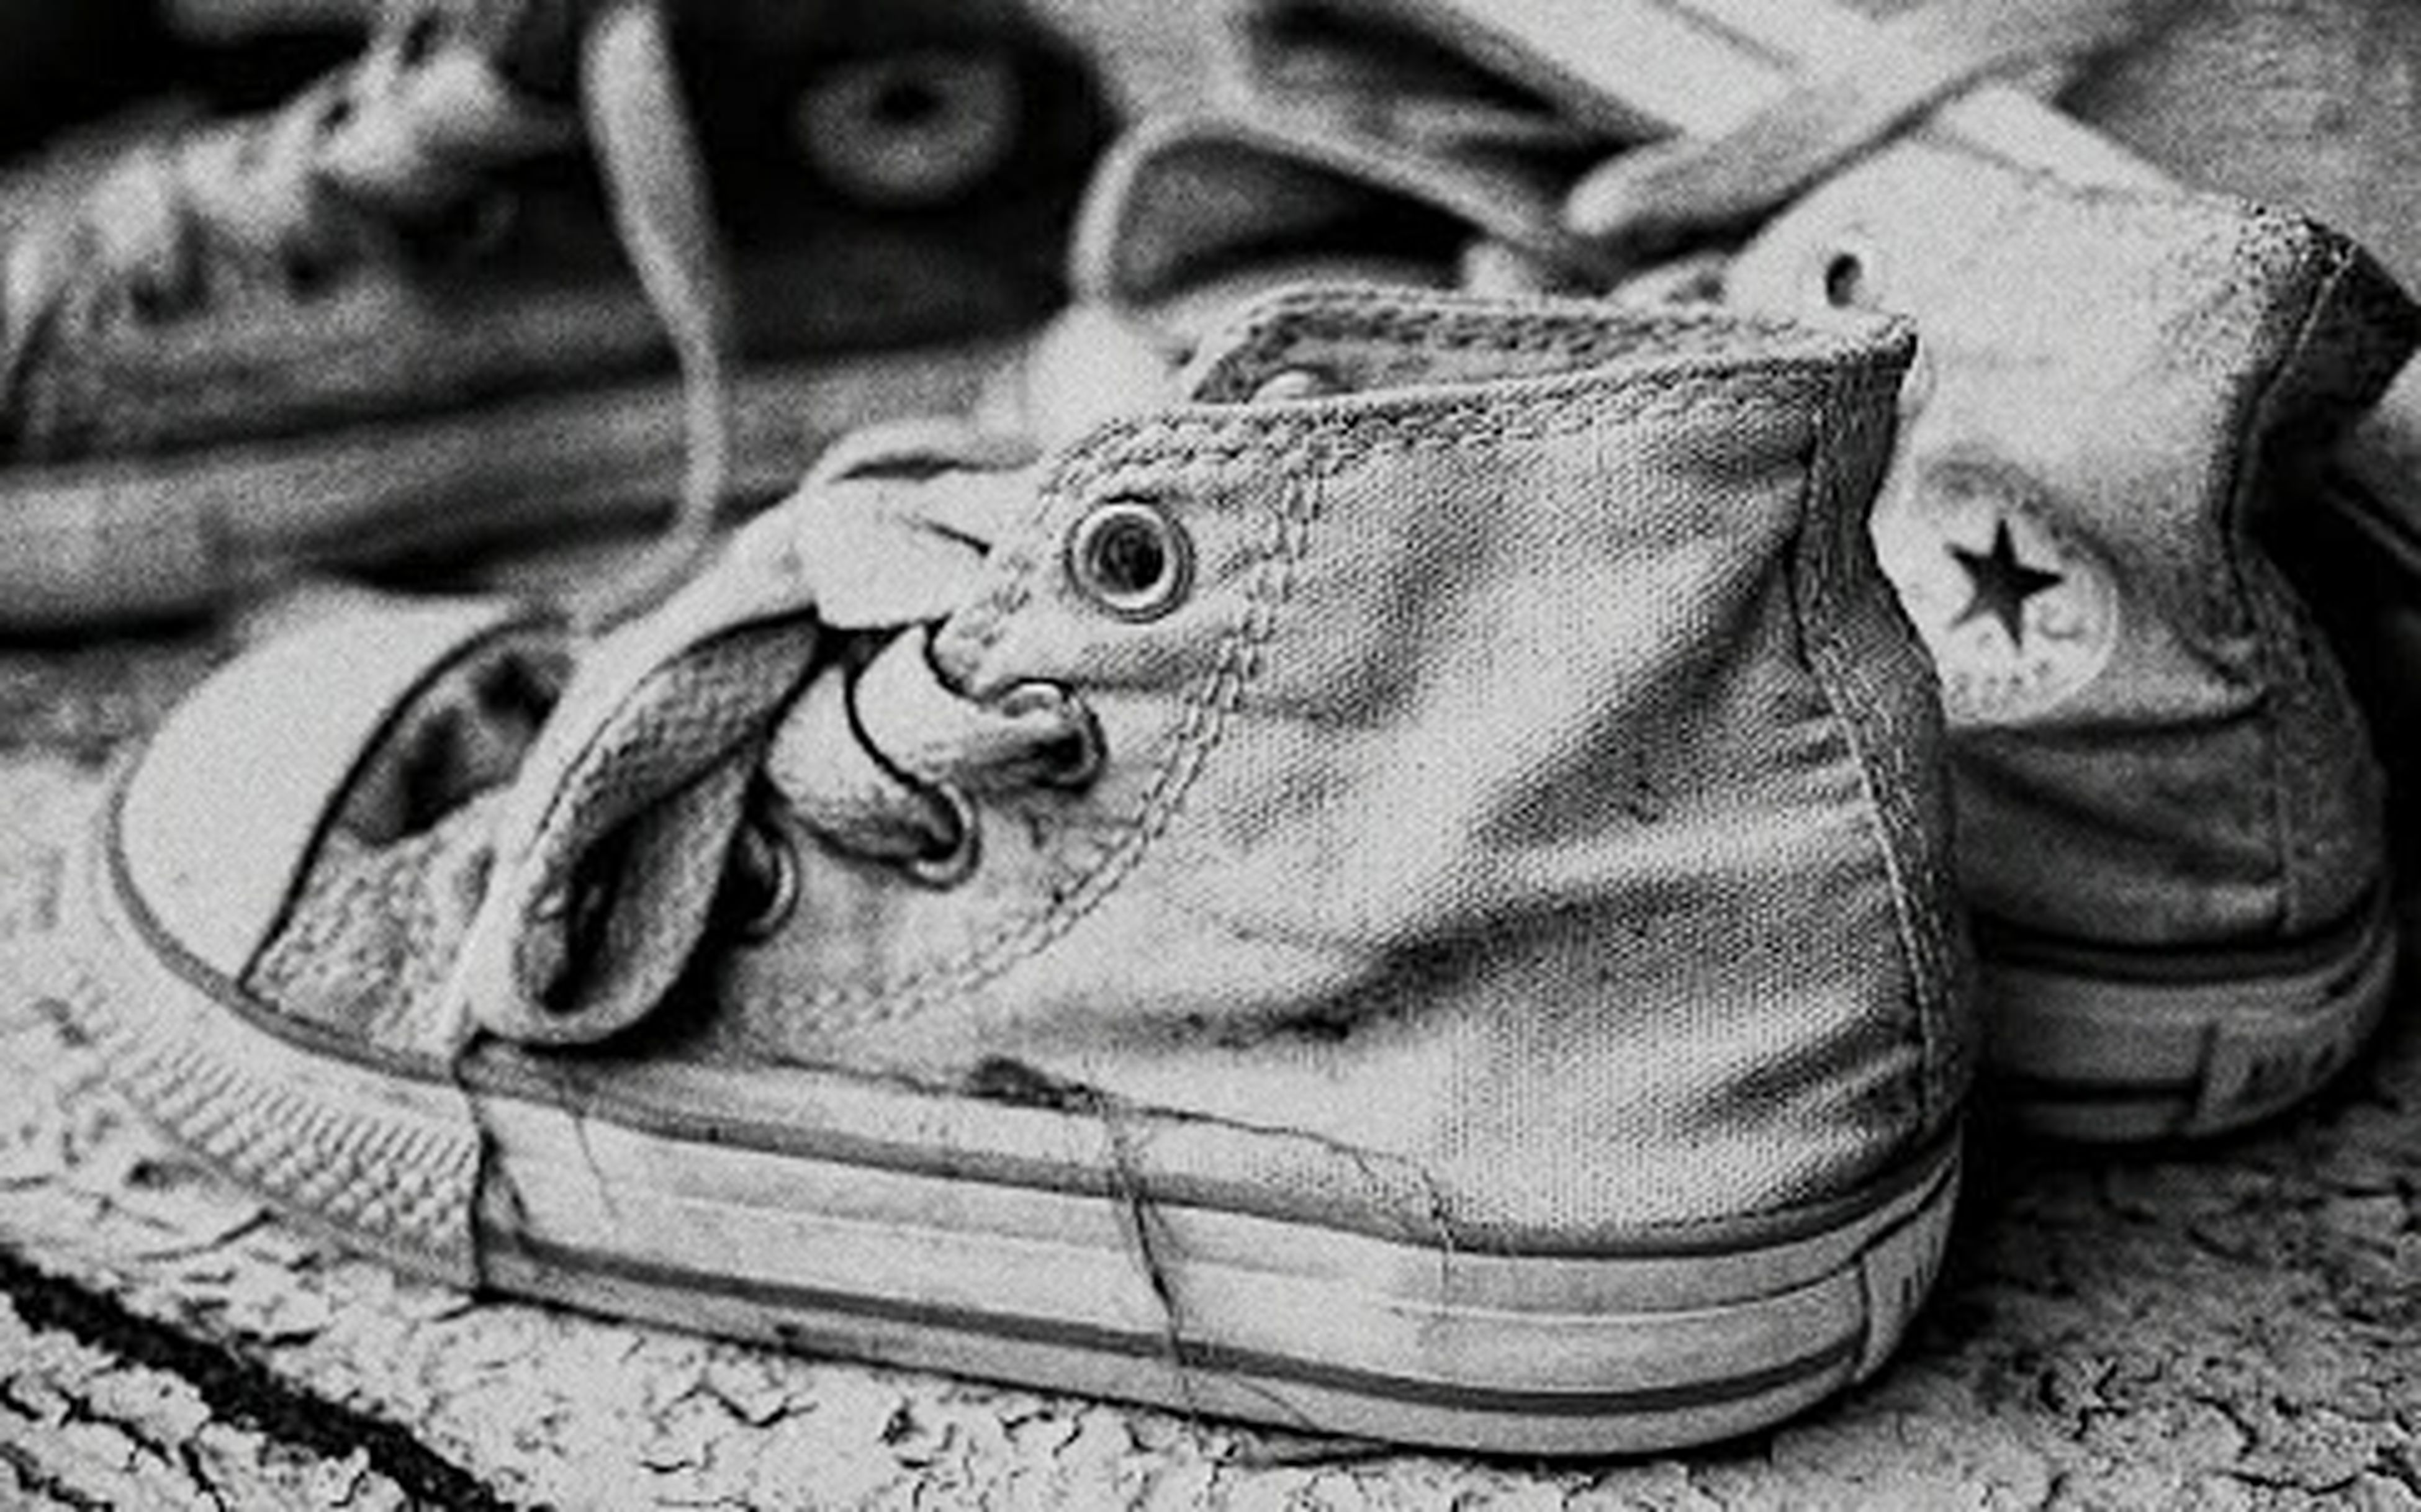 shoe, close-up, jeans, indoors, high angle view, leather, footwear, pair, still life, focus on foreground, low section, person, fashion, day, men, art and craft, black color, clothing, canvas shoe